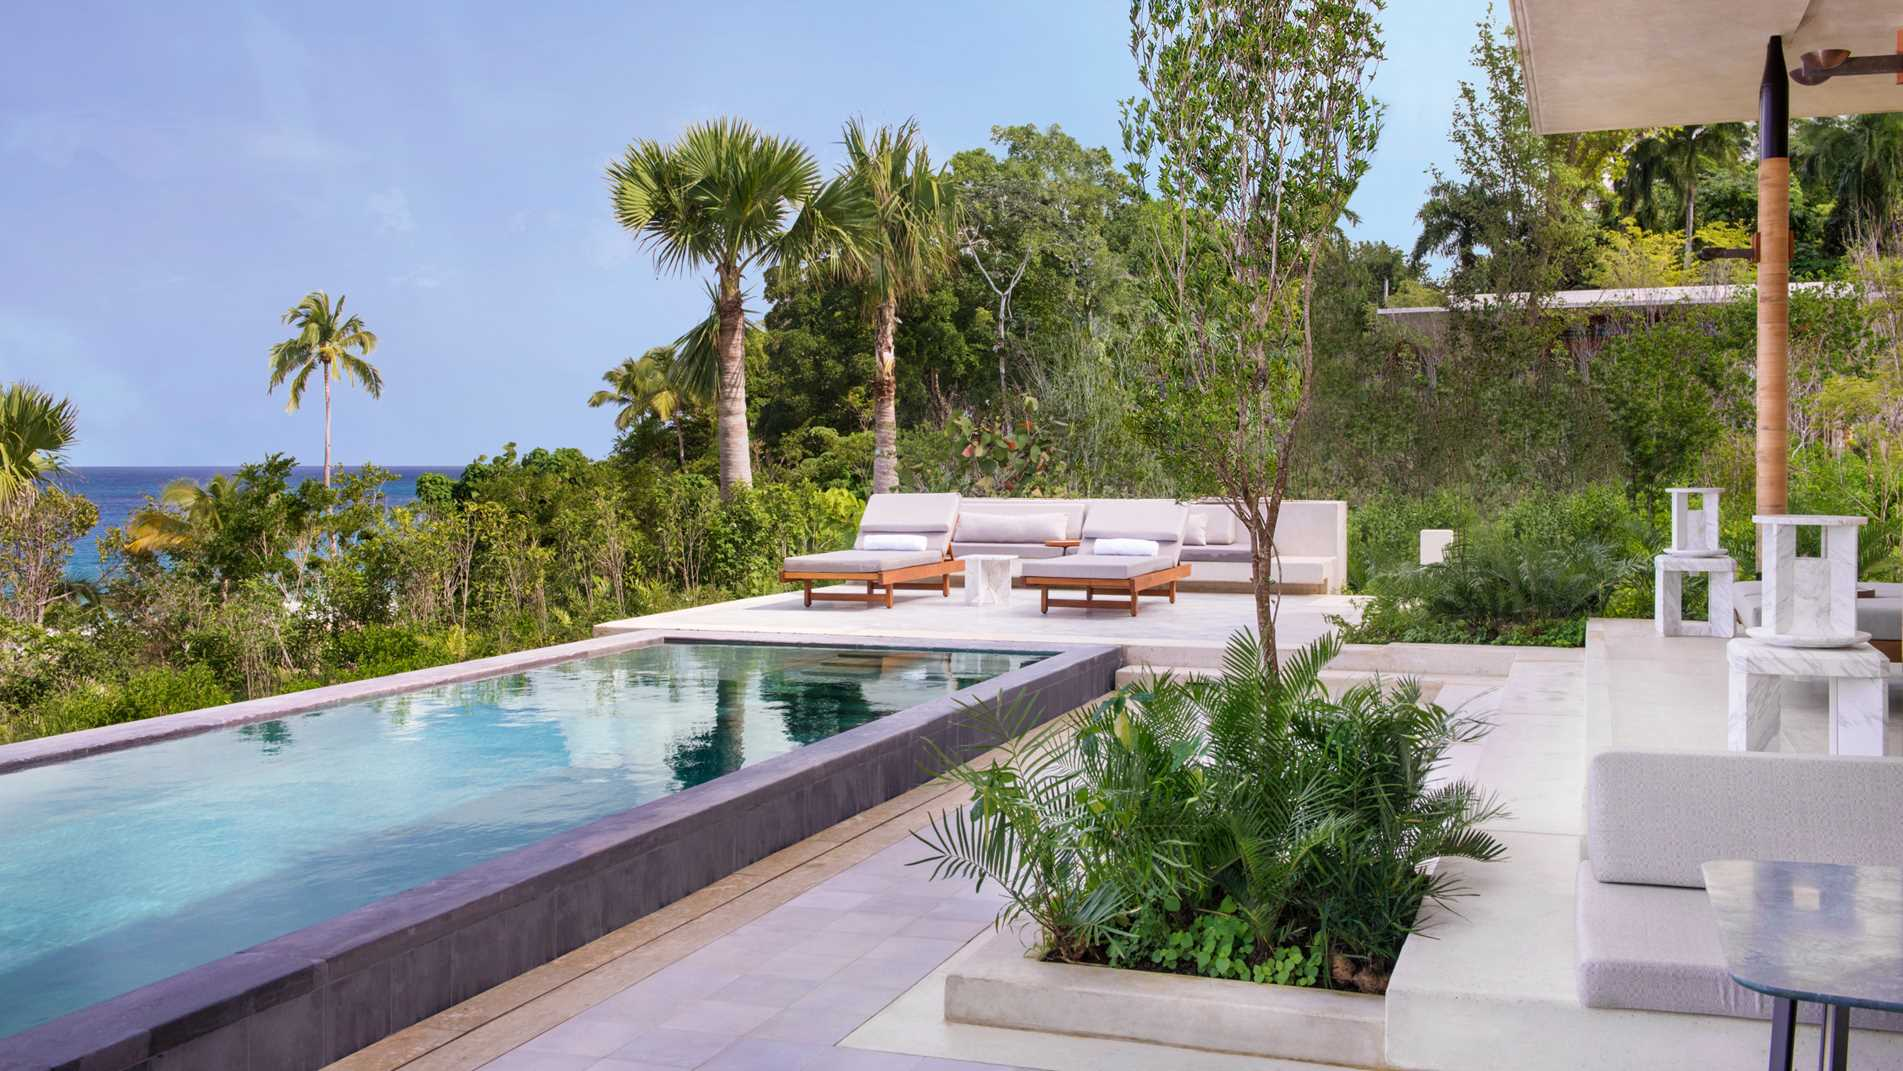 ocean-view-pool-casita_high-res_443.jpeg